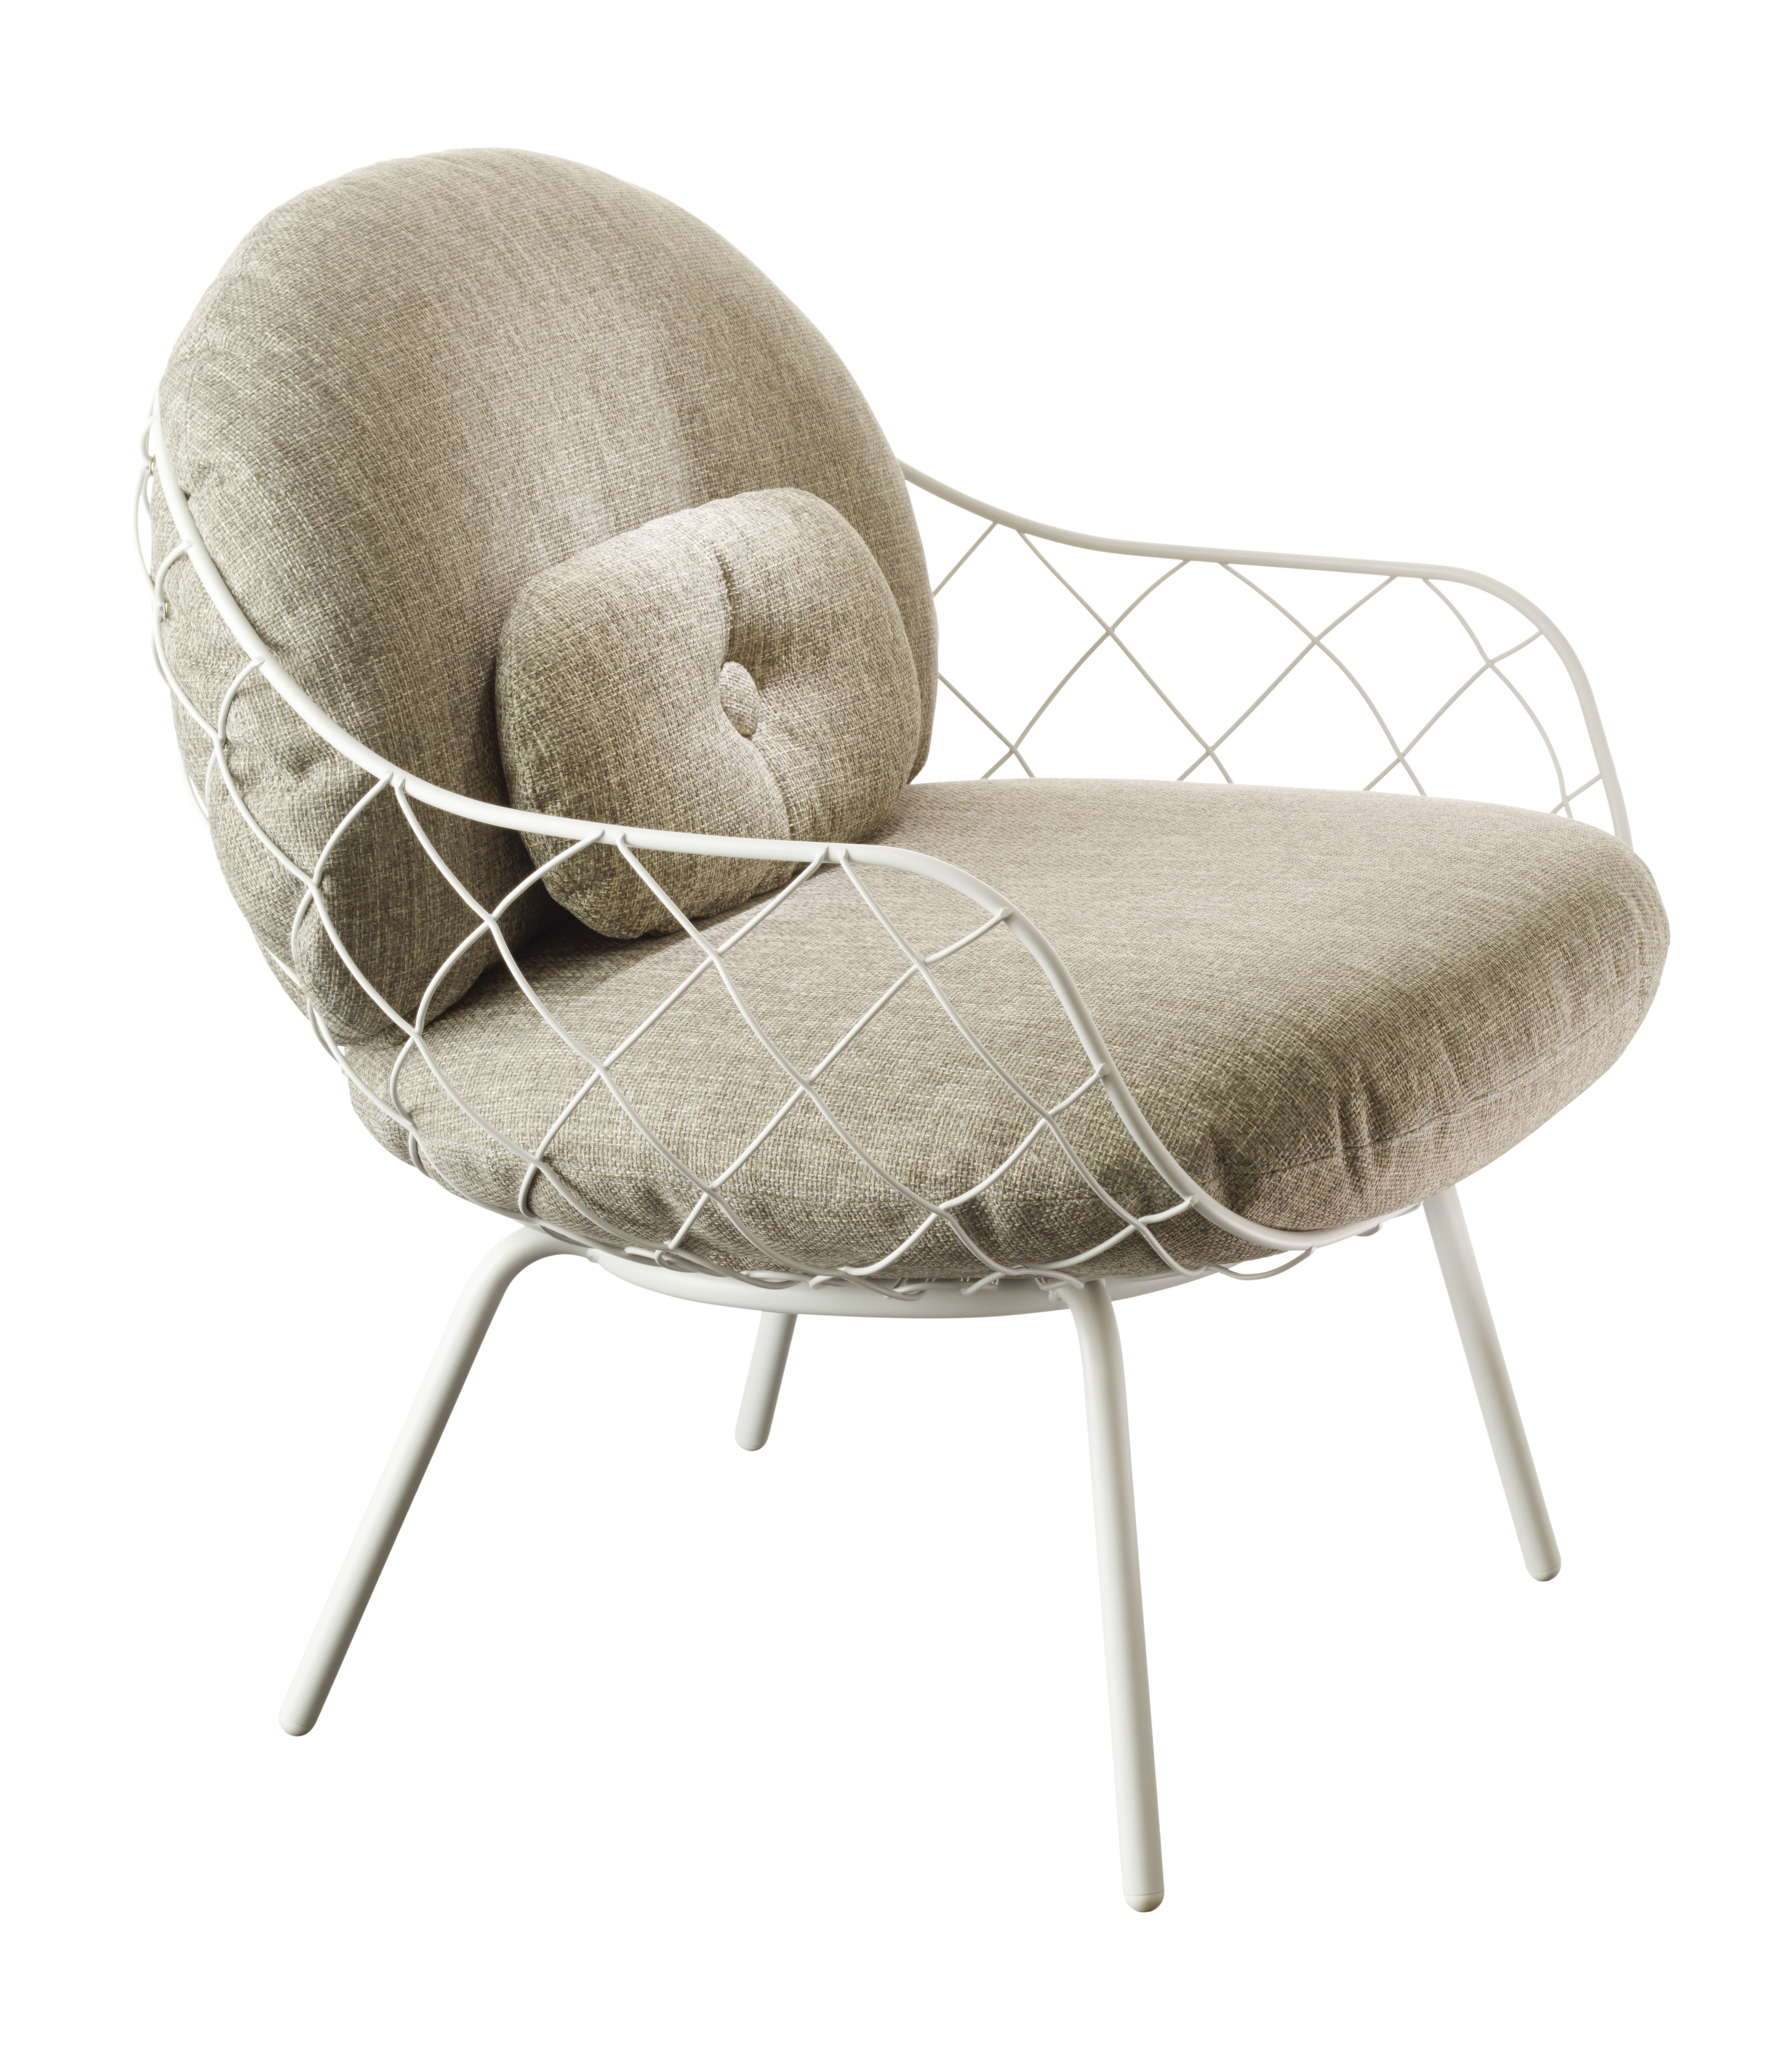 Furniture - Armchairs - Pina Outdoor Padded armchair - Fabric by Magis - White structure / Grey cushions - Expanded polyurethane foam, Fabric, Varnished steel